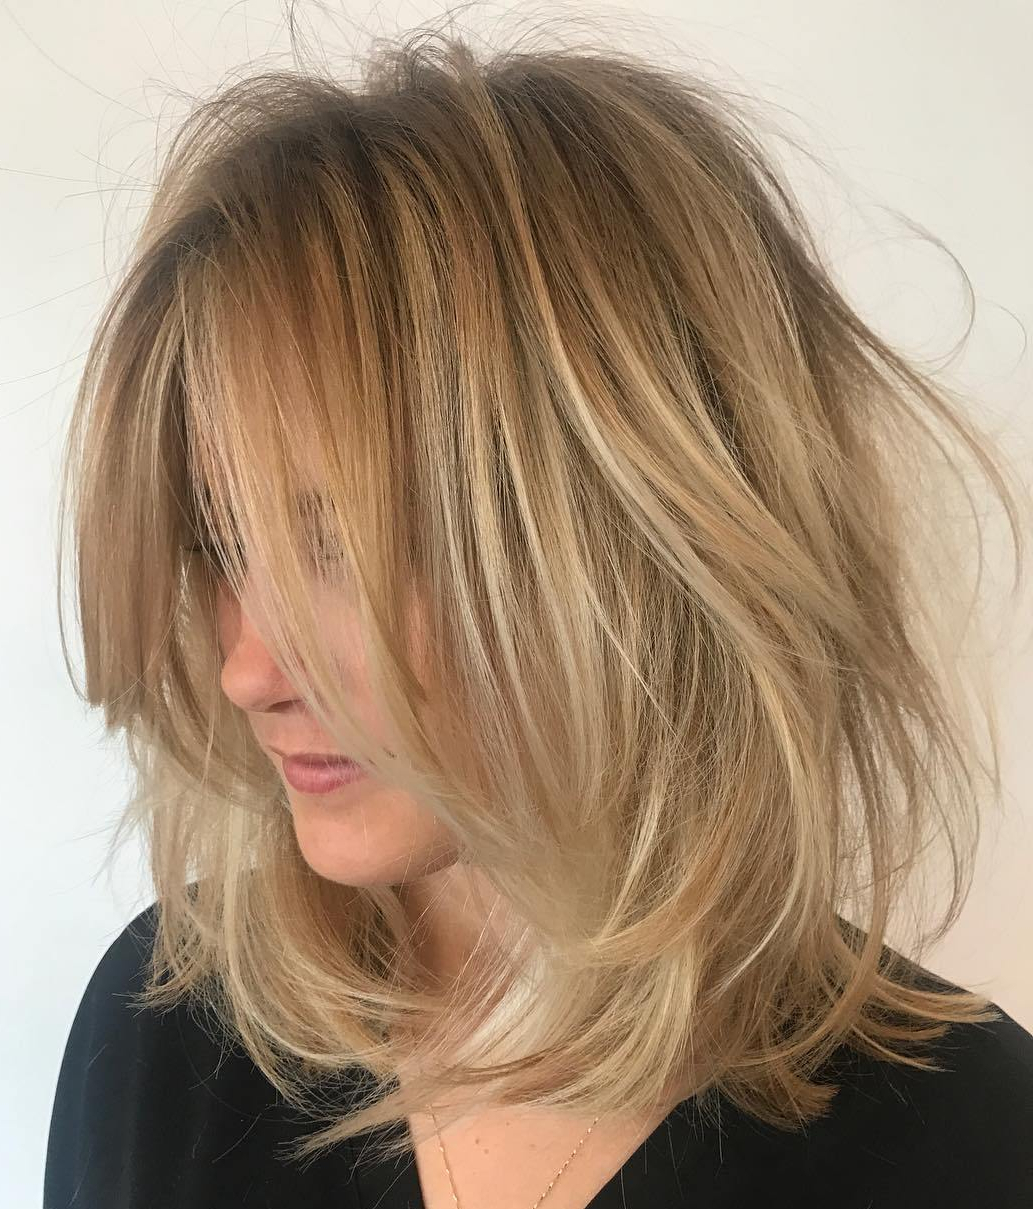 70 Devastatingly Cool Haircuts For Thin Hair Pertaining To Well Known Long Texture Revealing Layers Hairstyles (View 3 of 20)